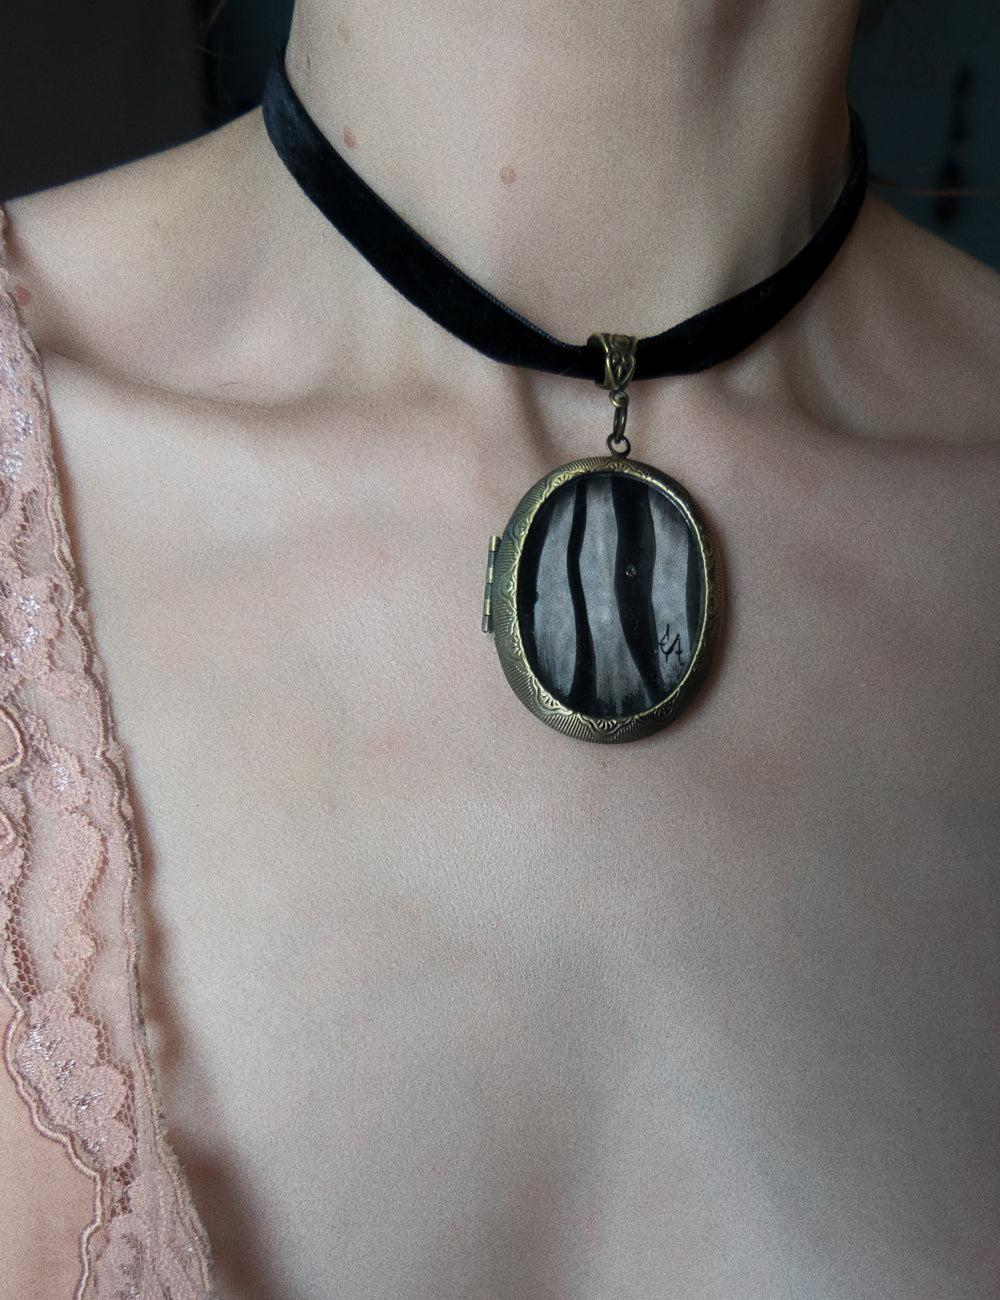 """Striped Asylum Wallpaper"" Handmade Locket Necklace, Limited Edition of 20"